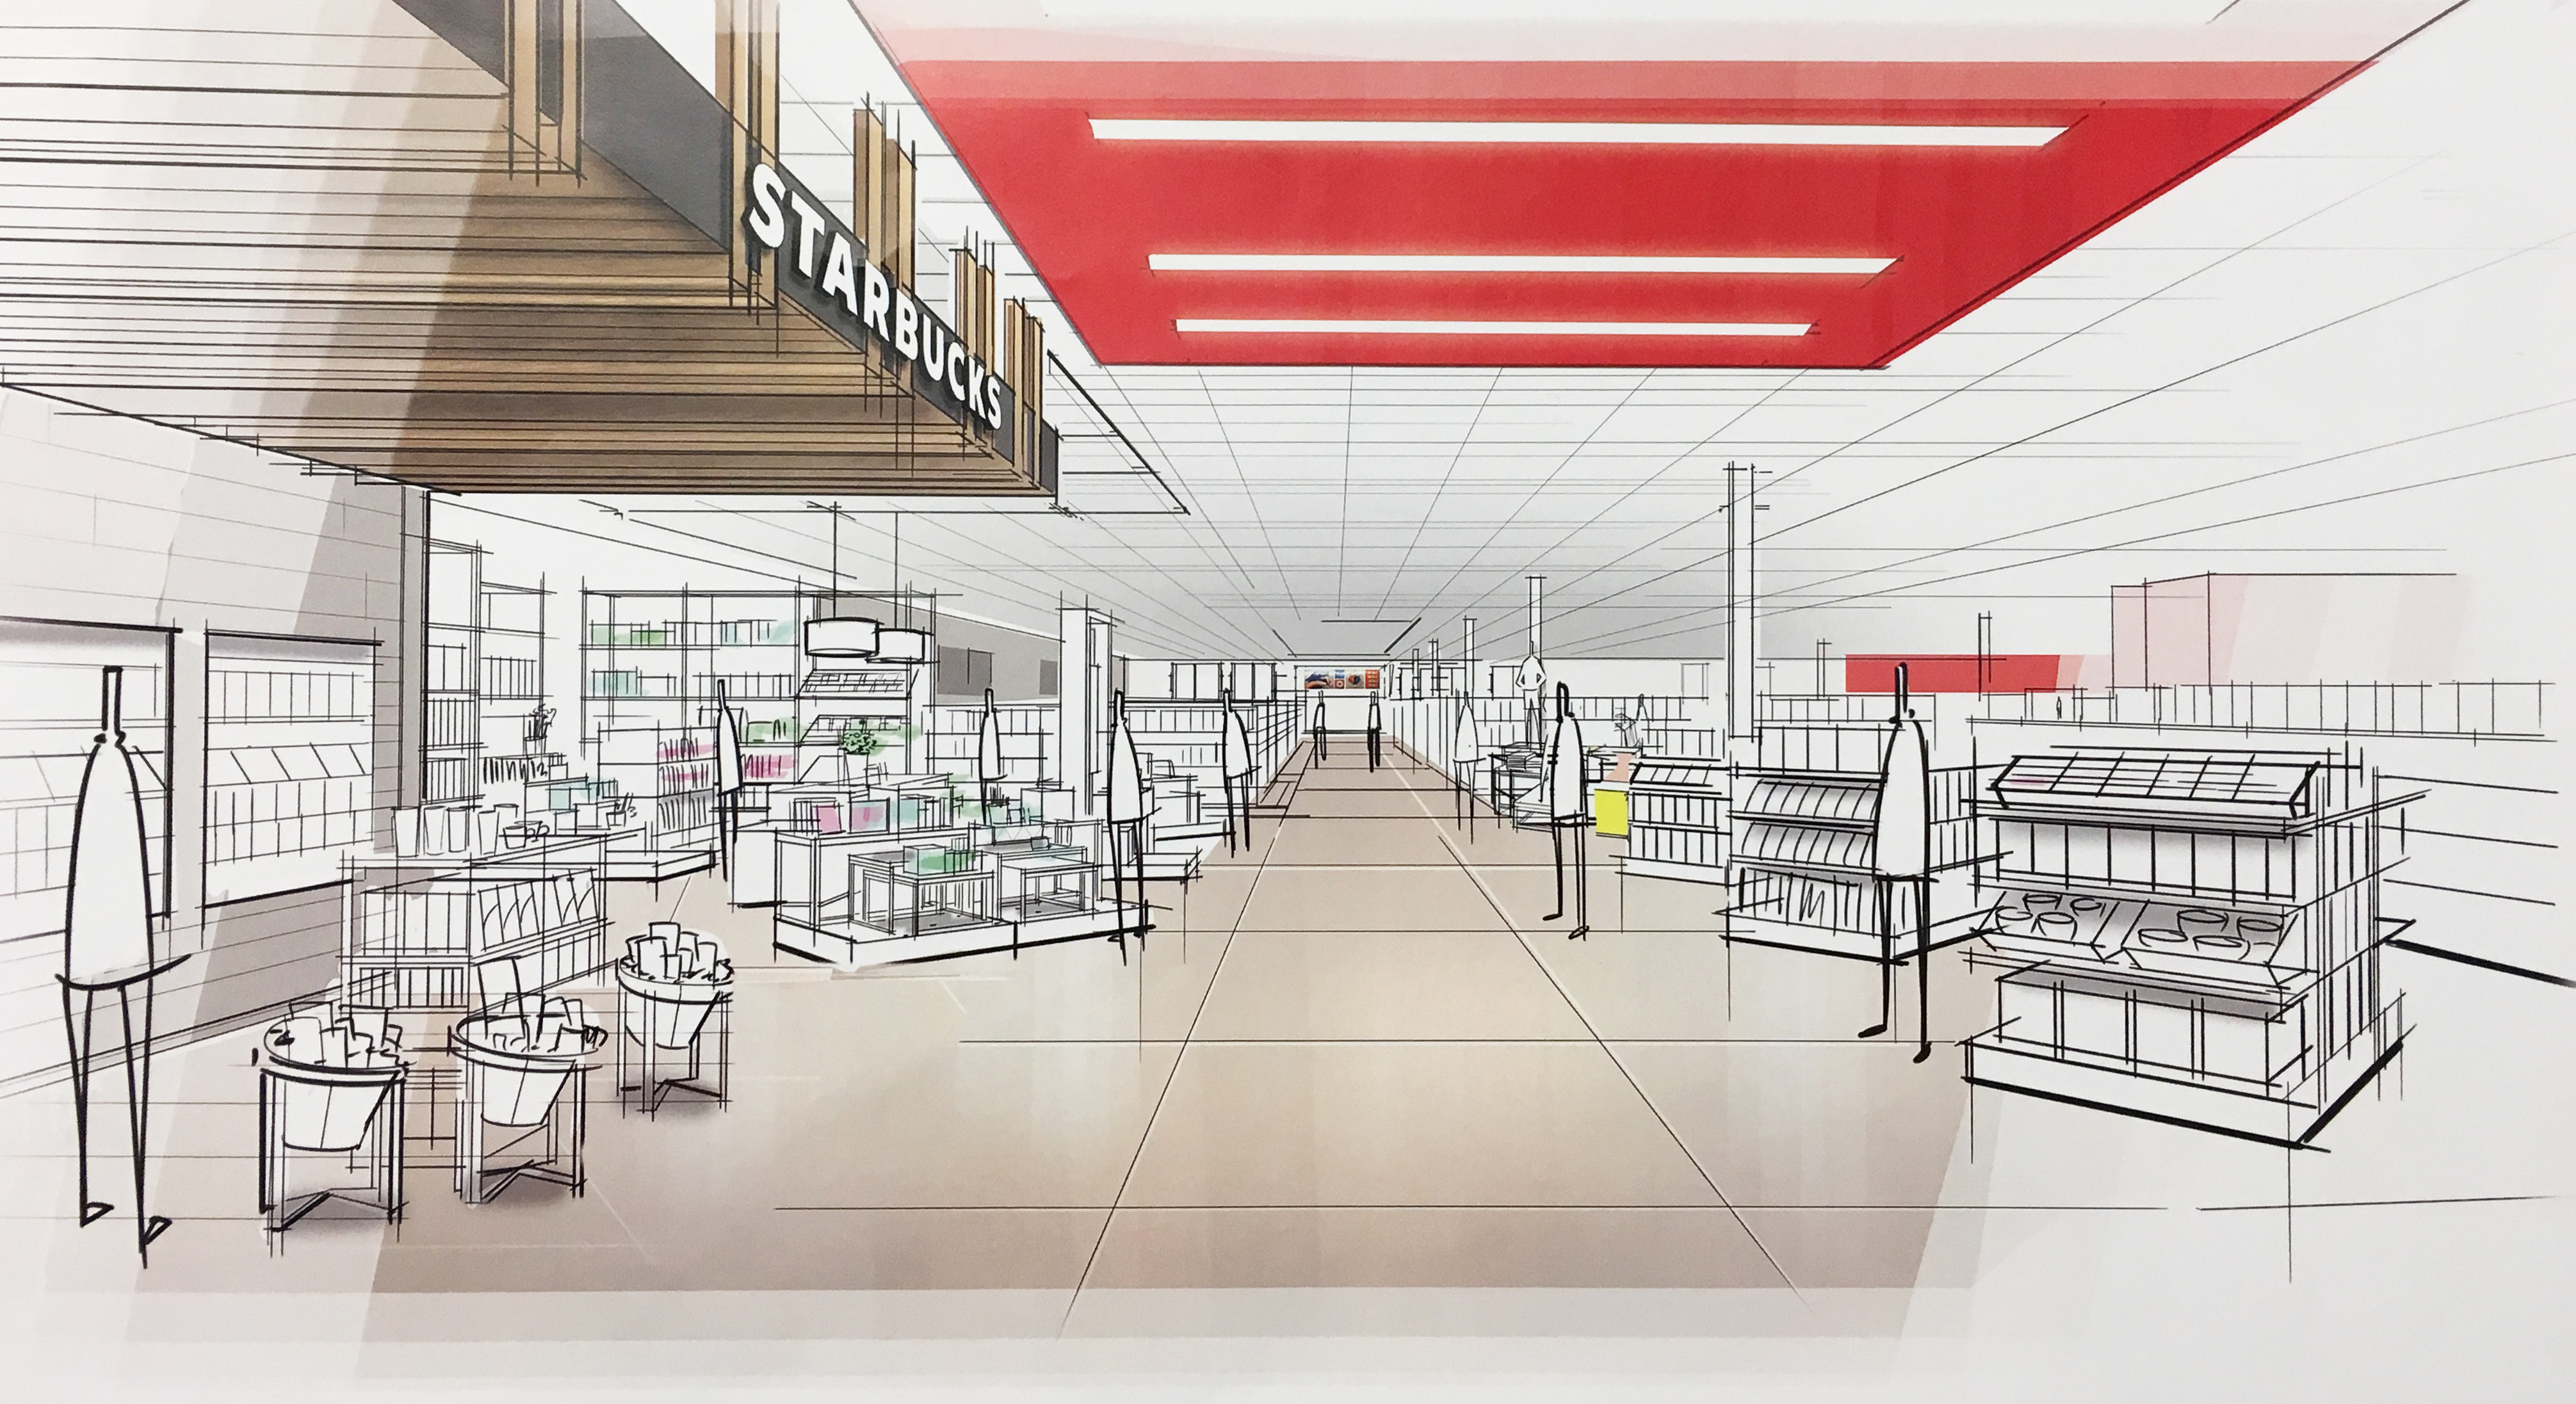 Target revamps stores for those in a rush, those who ramble